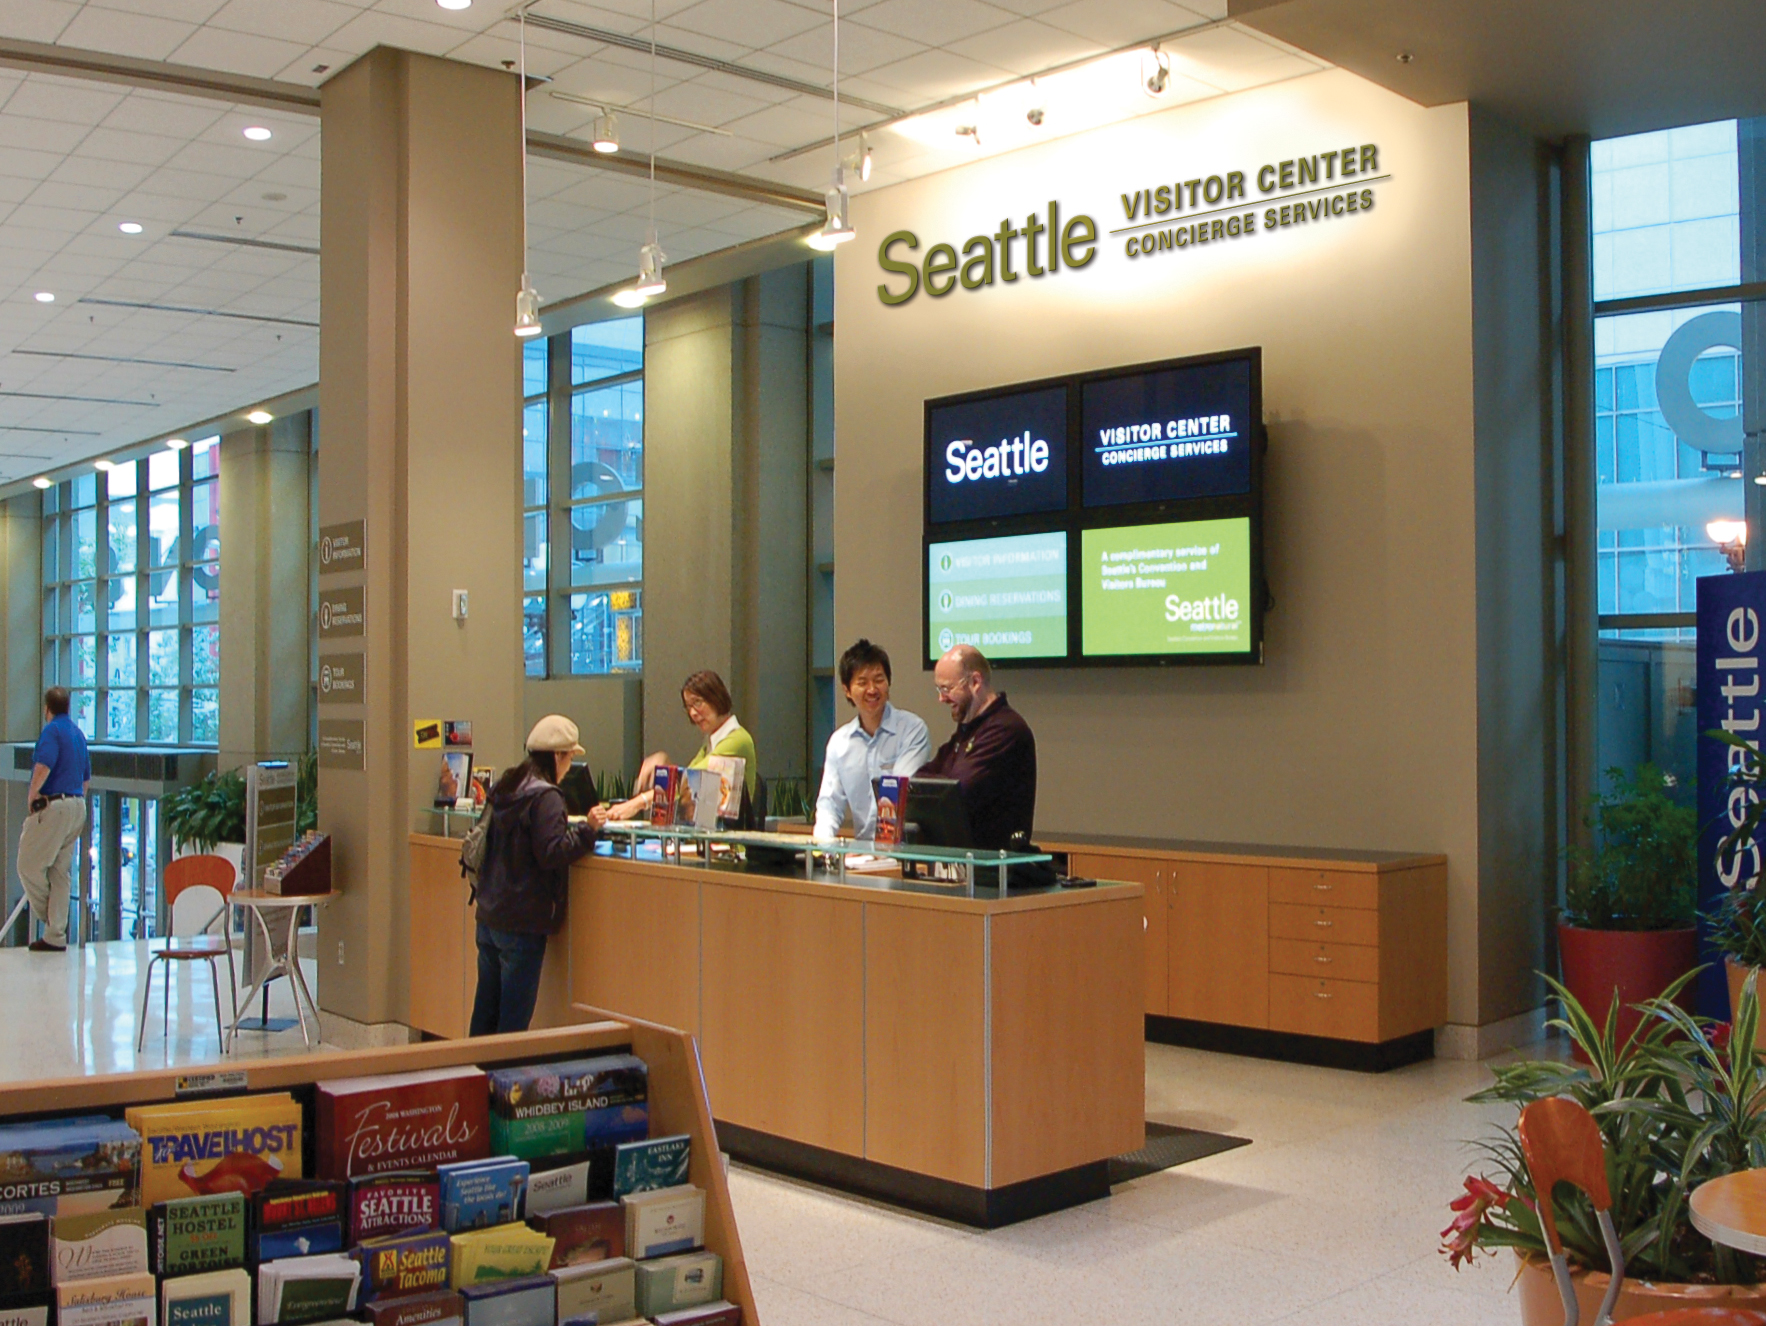 Hotels In Seattle >> Specialized Technology Helps Seattle's CVB Make the Right Connections Between Visitors and Members